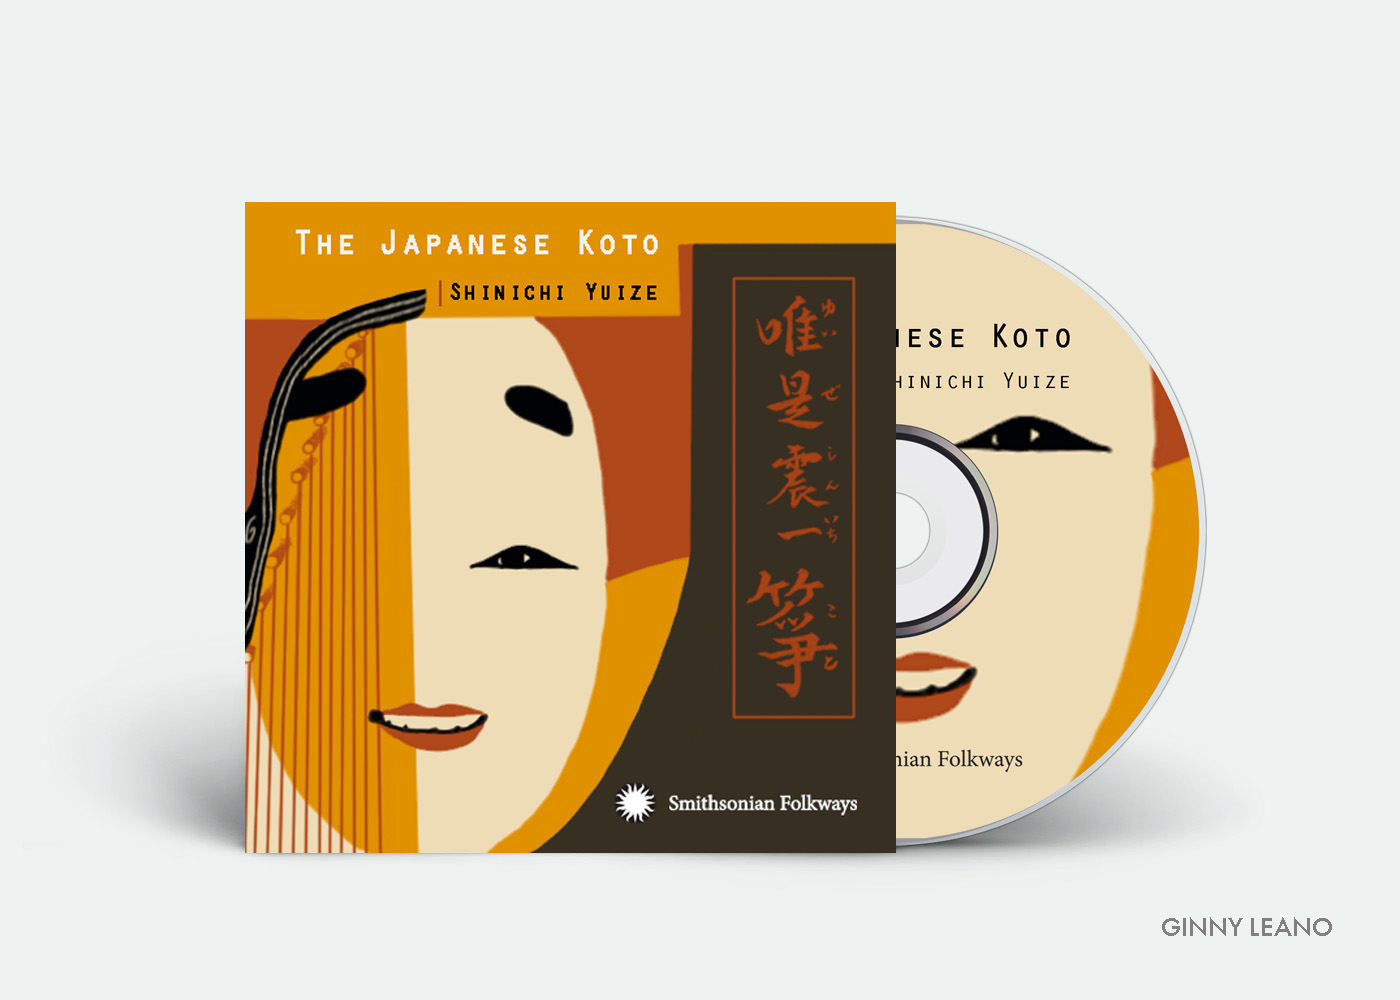 The Japanese Koto